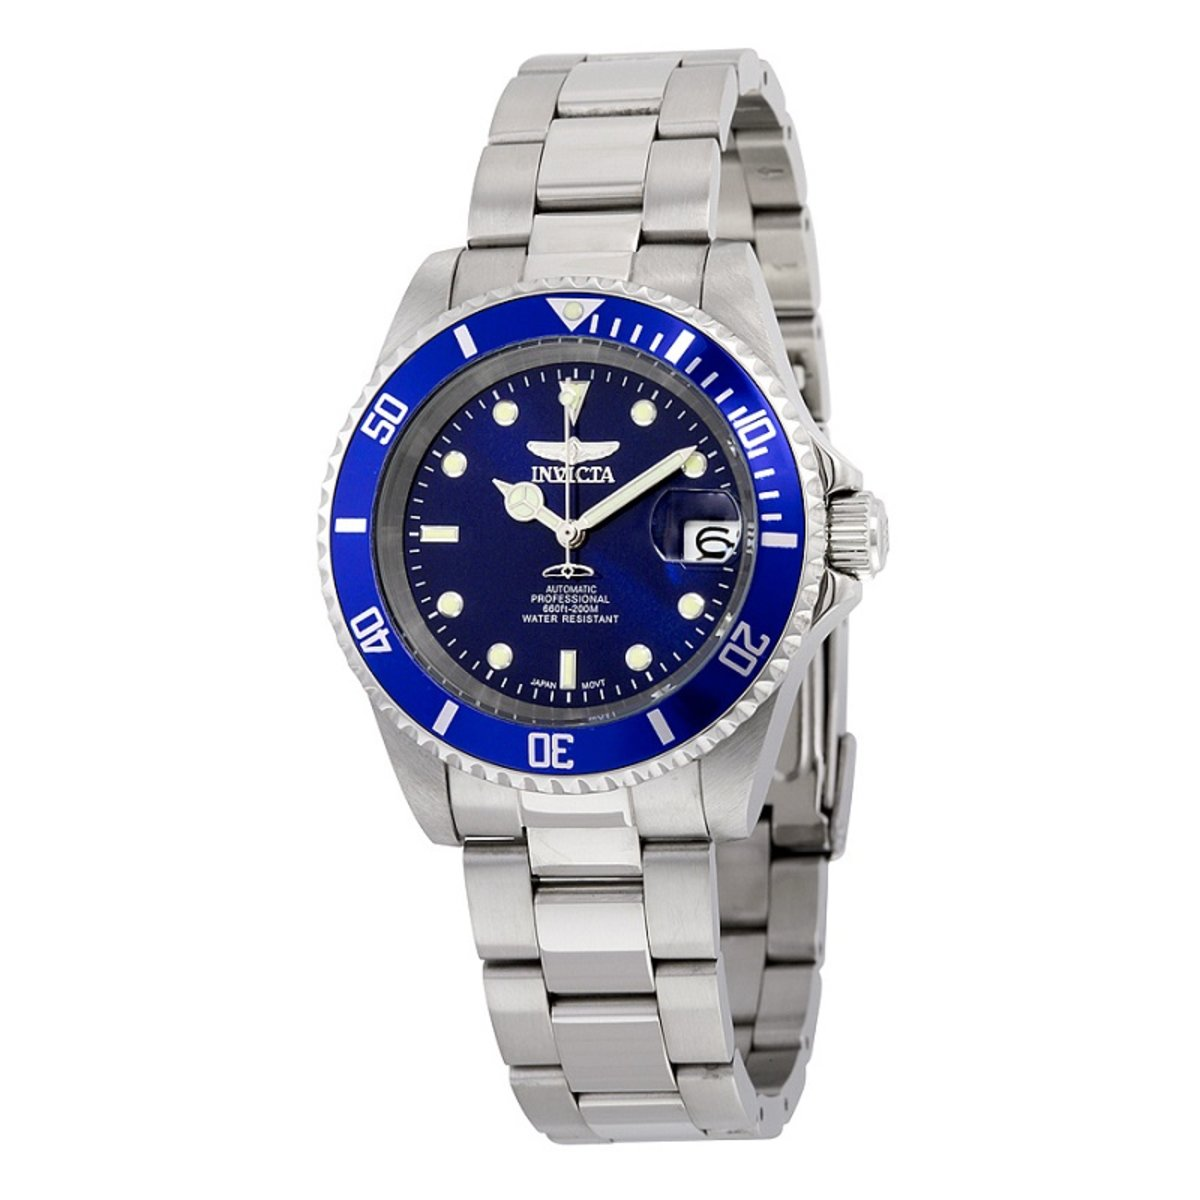 Invicta Pro Diver Men's Automatic Watch 9094OB Parallel Import